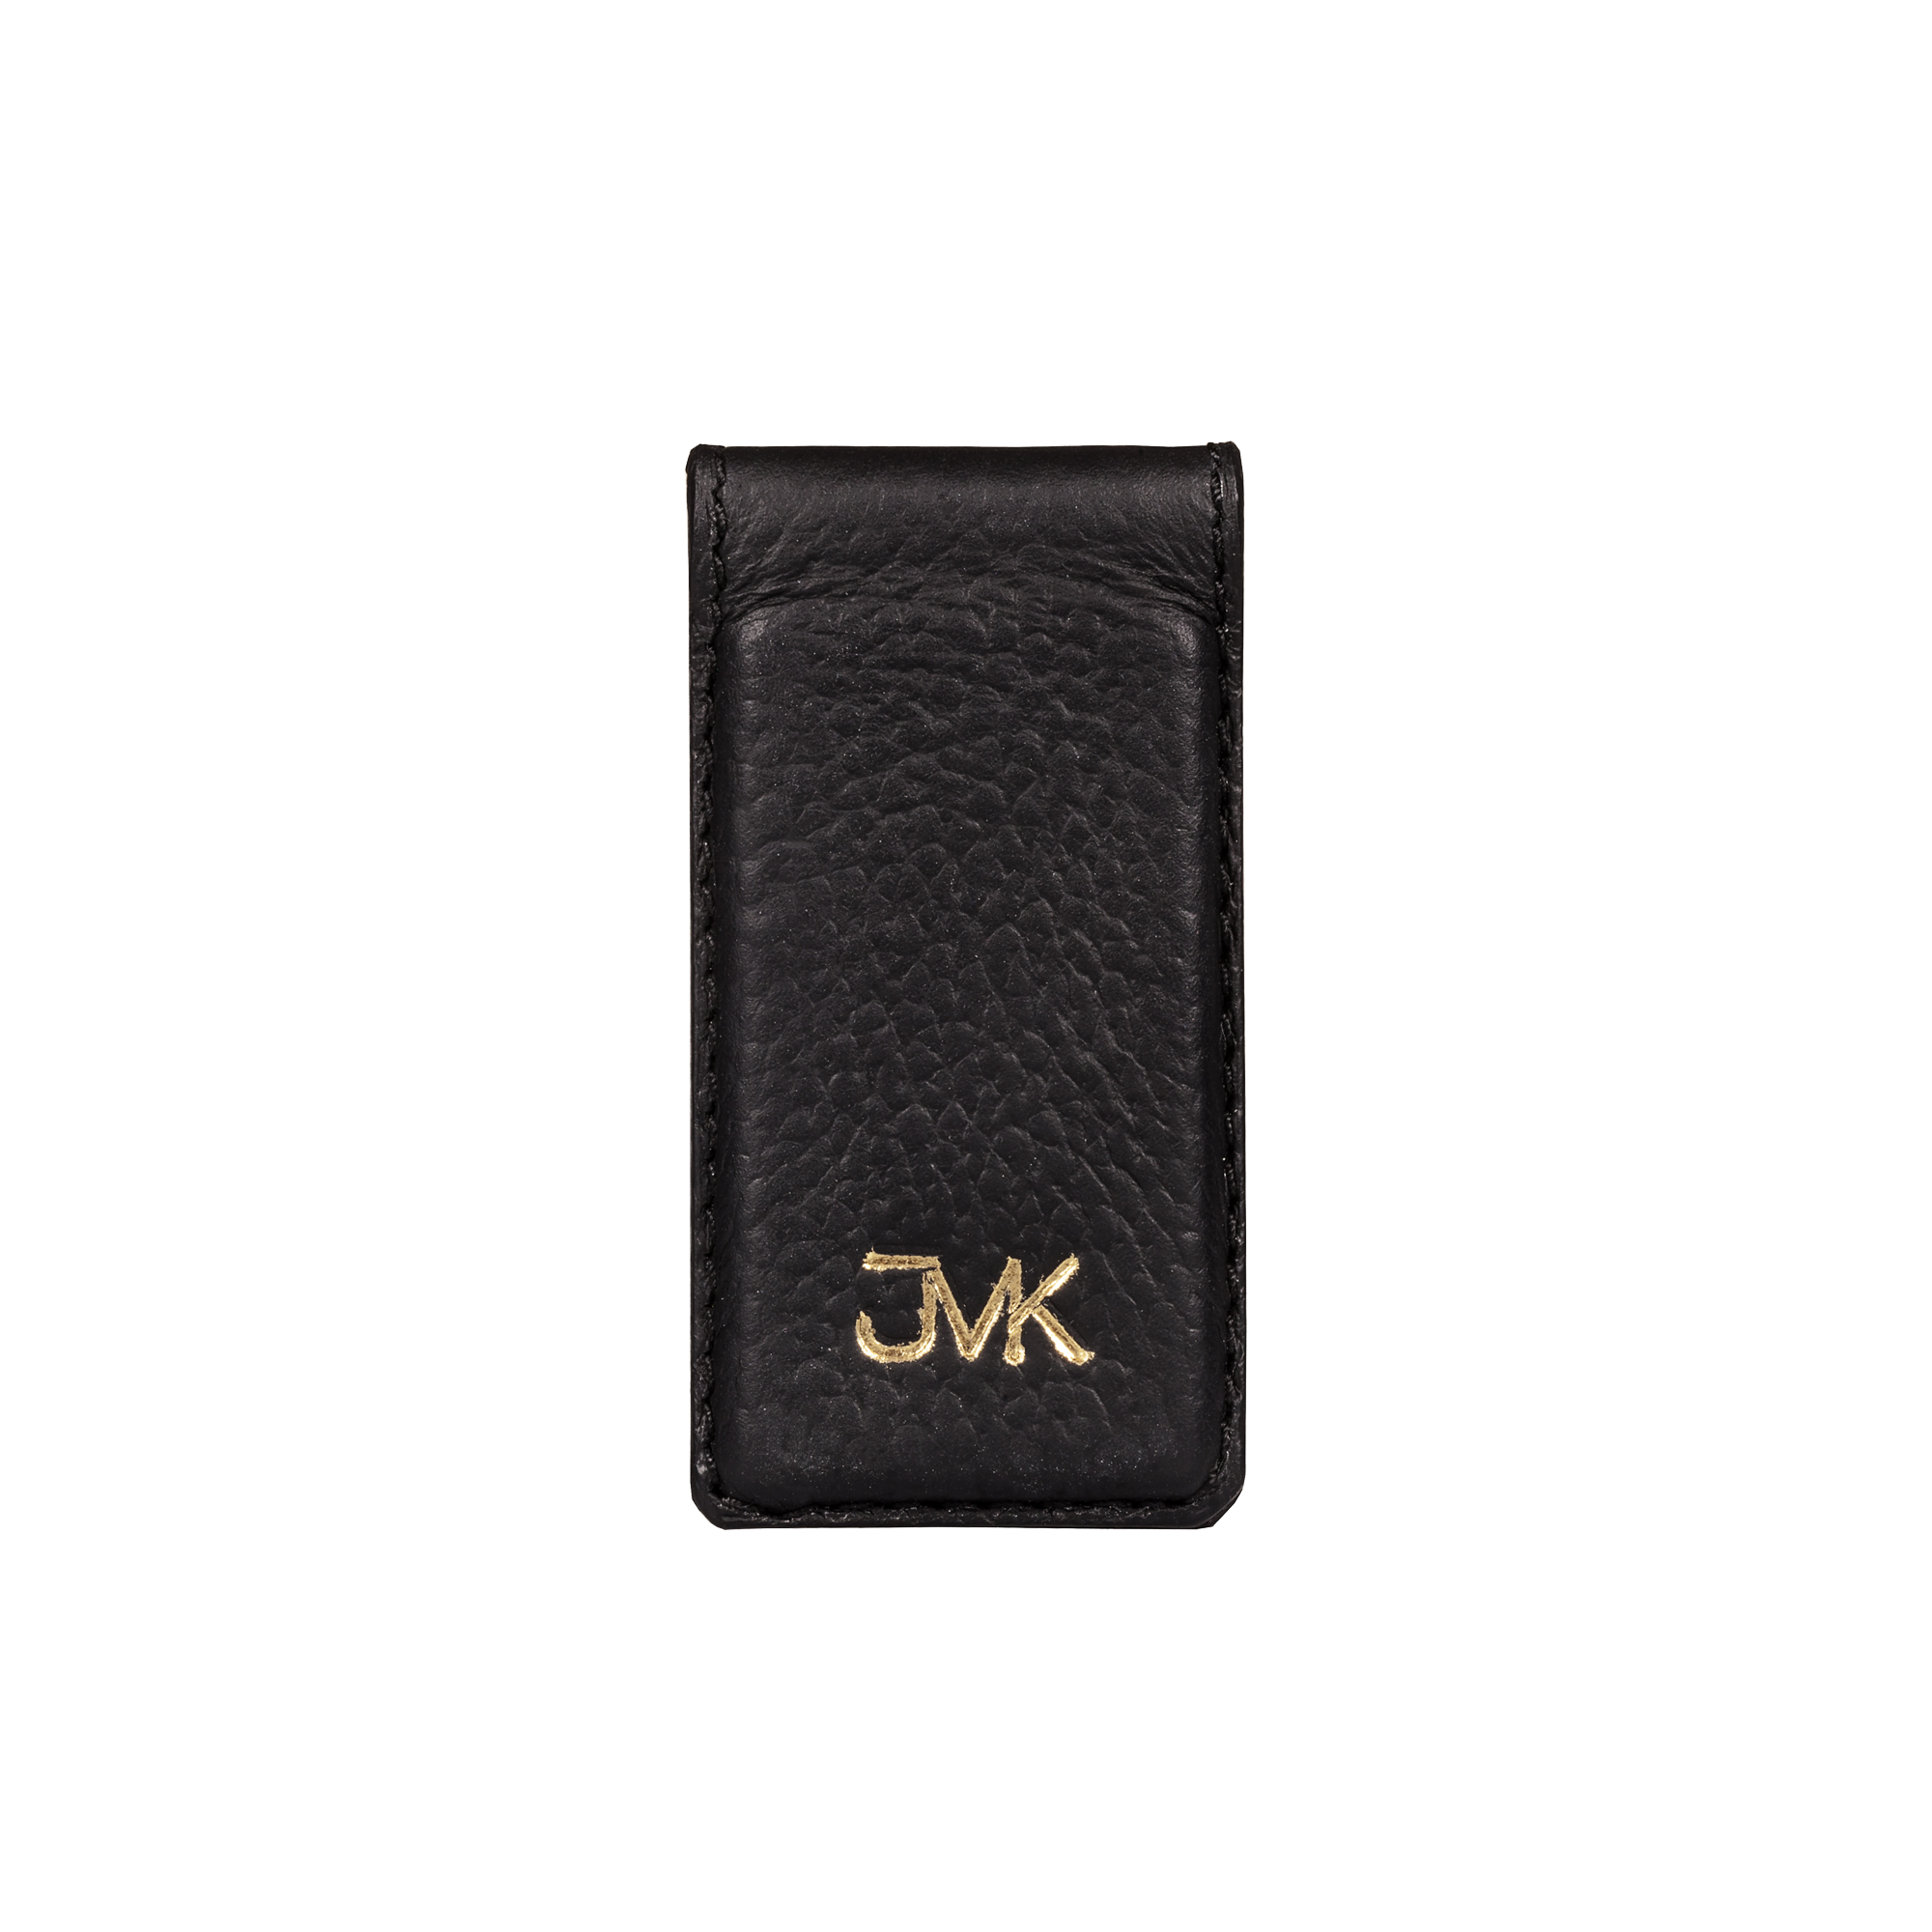 Money Clip, Grain Leather Black/Black, MAISON JMK-VONMEL Luxe Gifts